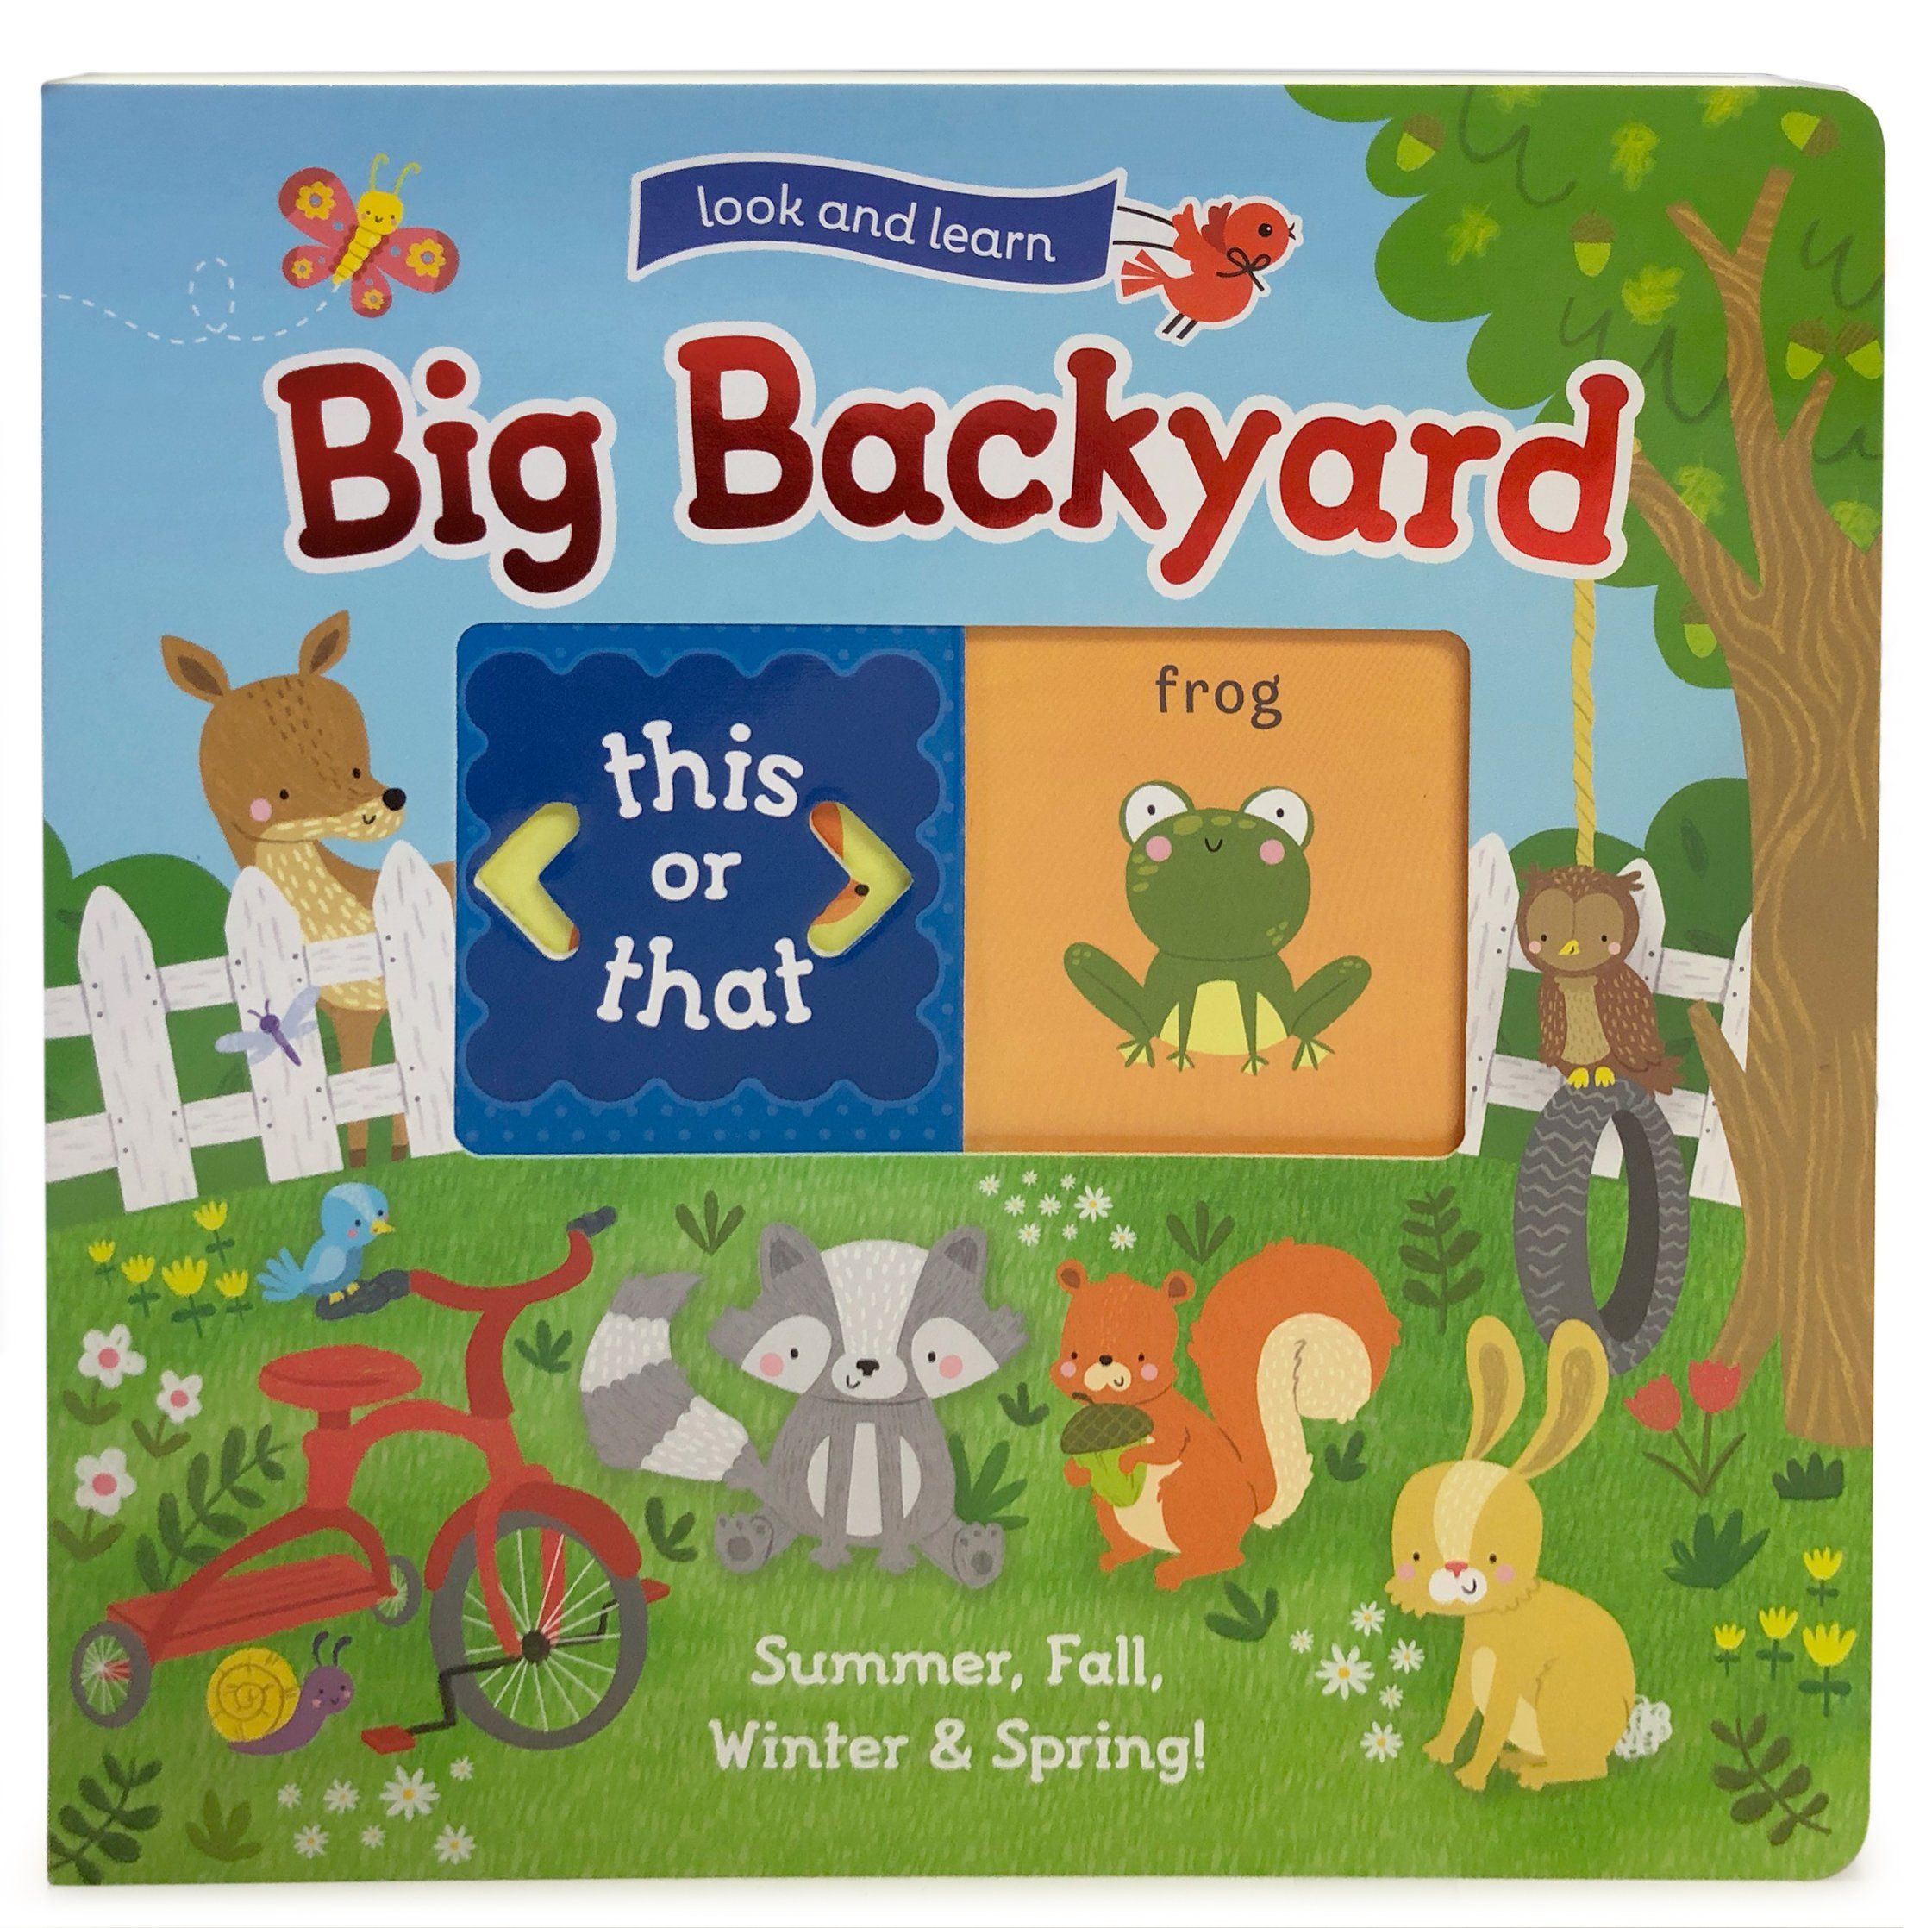 *Big Backyard Summer,Fall, Winter & Spring Book